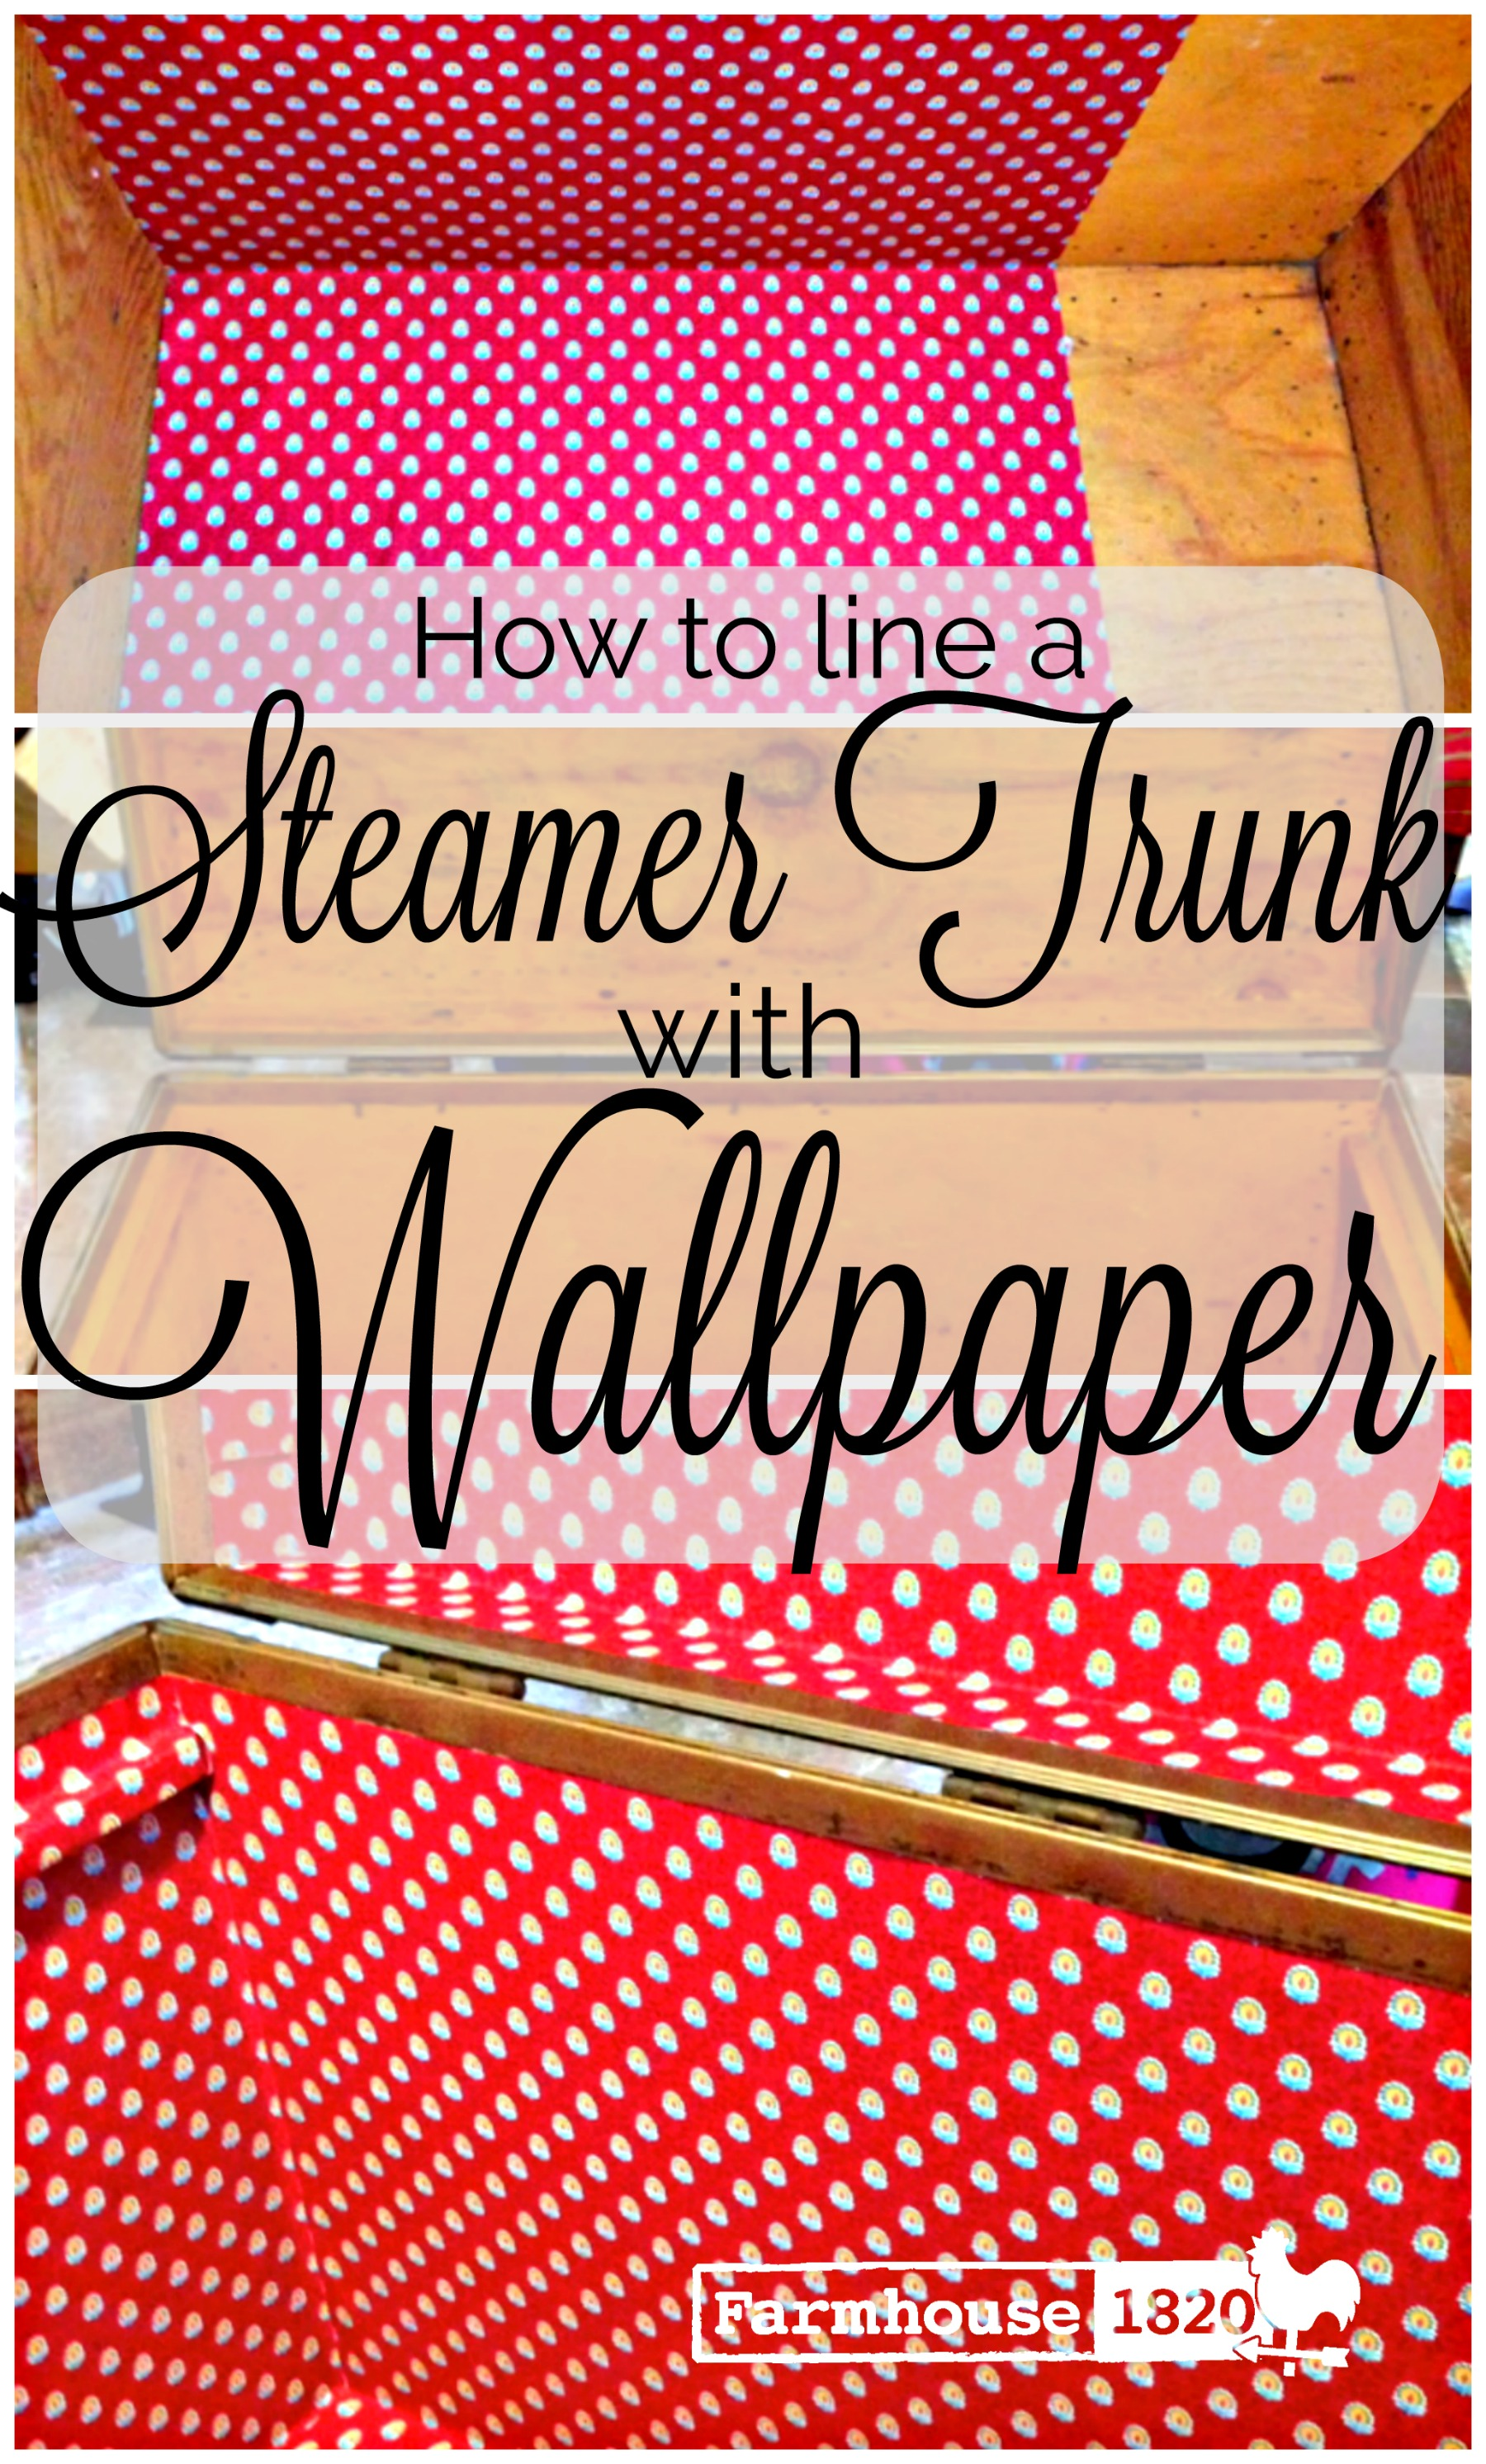 Pinterest - how to line a steamer trunk with wallpaper